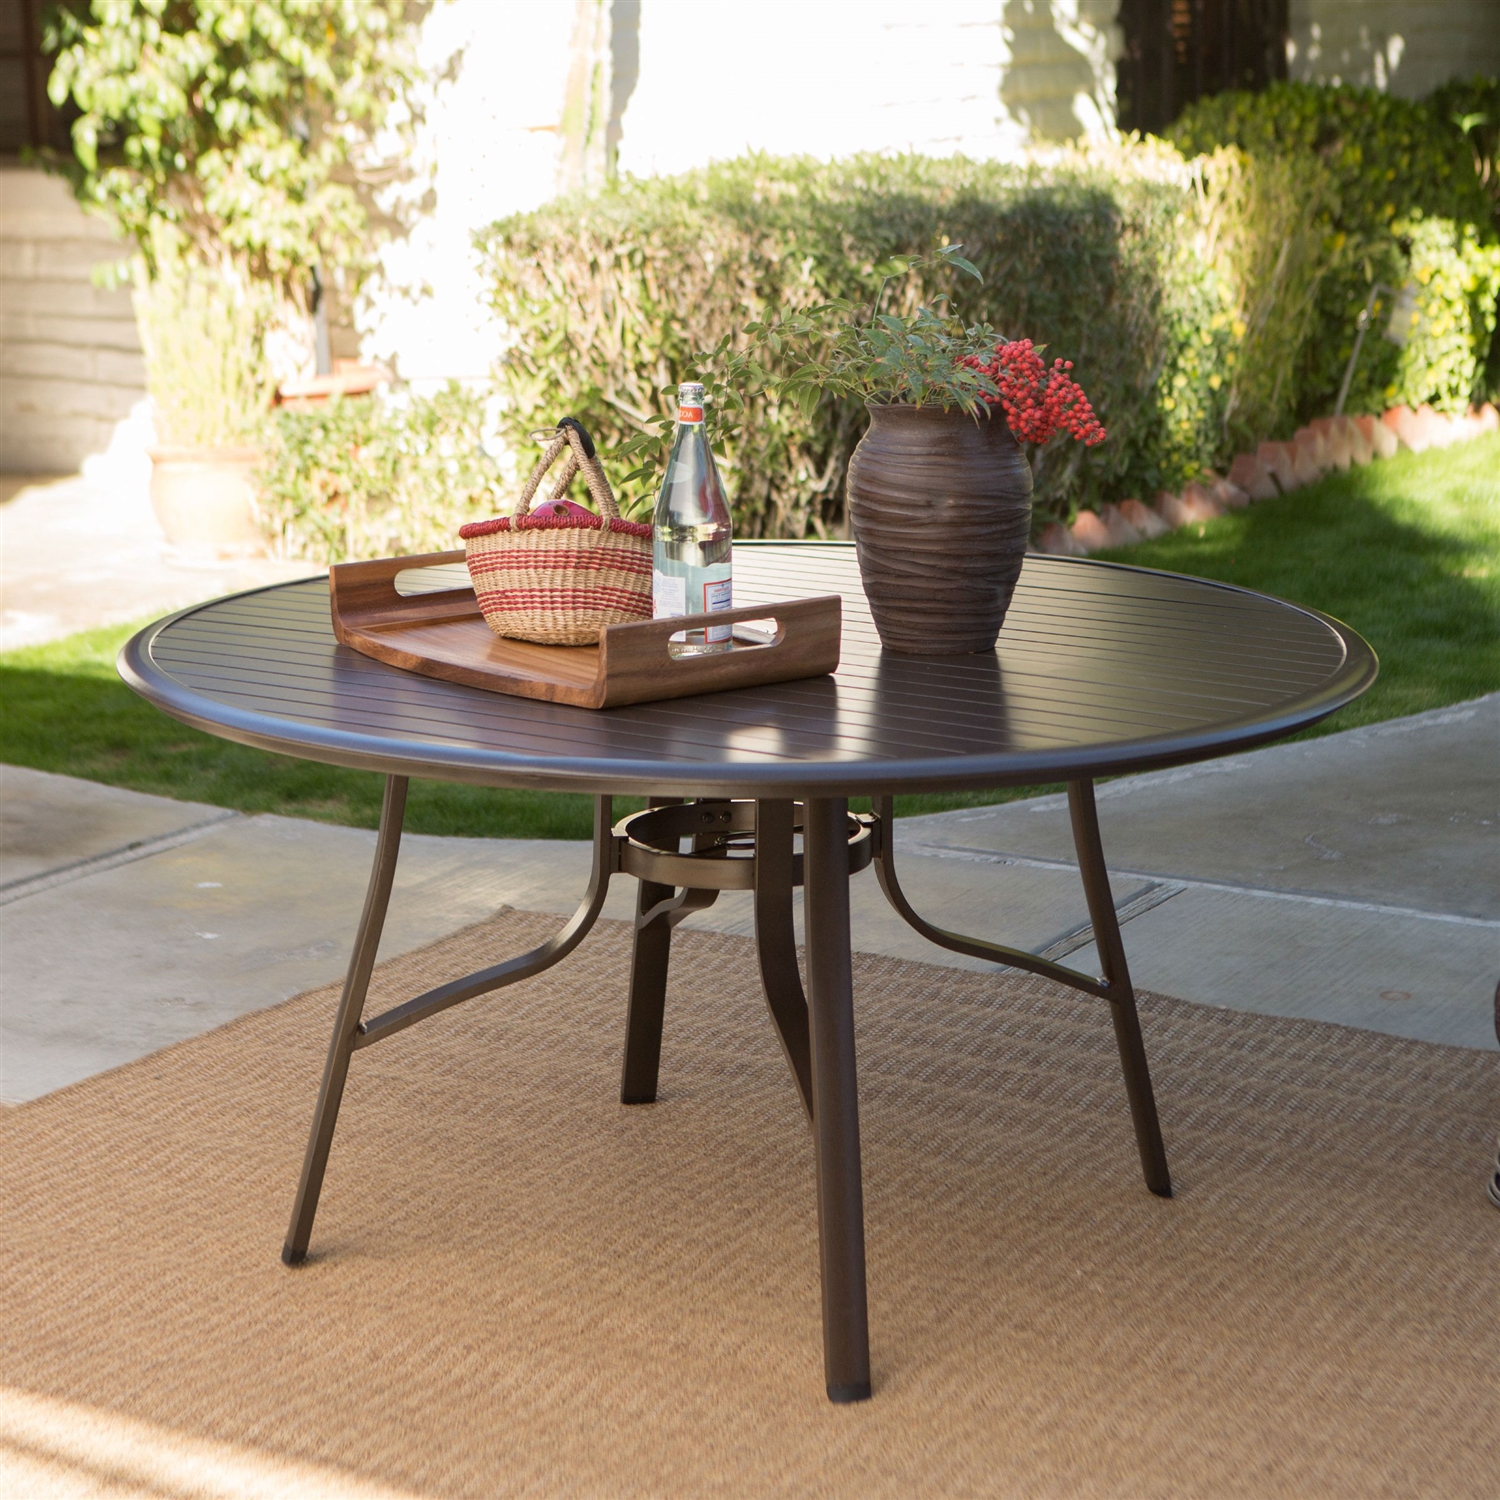 Modern Patio Dining Furniture round 51-inch modern patio dining table with center umbrella hole